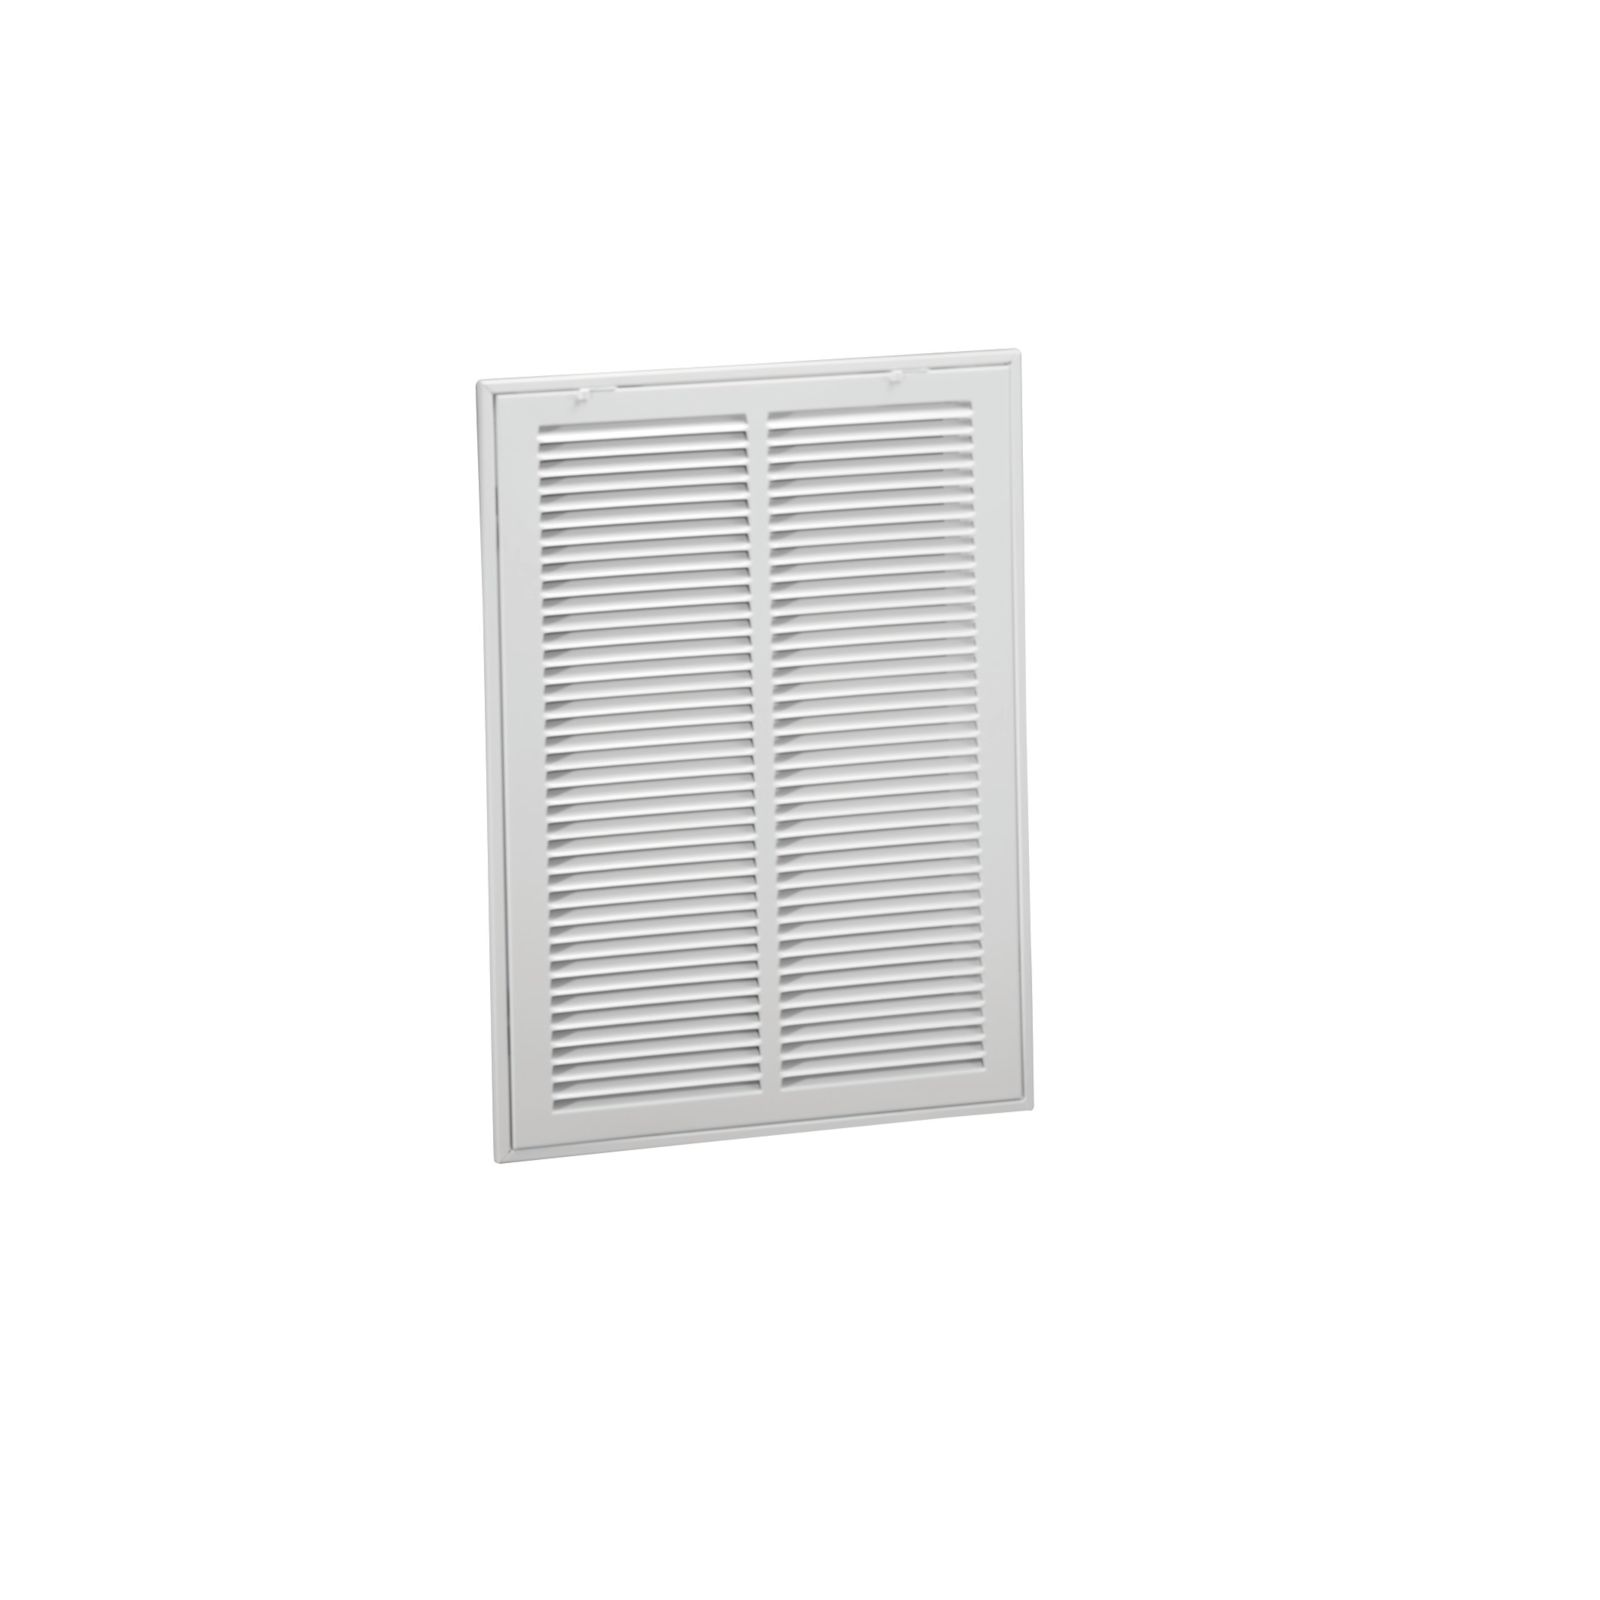 "Hart & Cooley 703965 - #673M Steel Return Air Filter Grille, White Finish, 12"" X 12"""